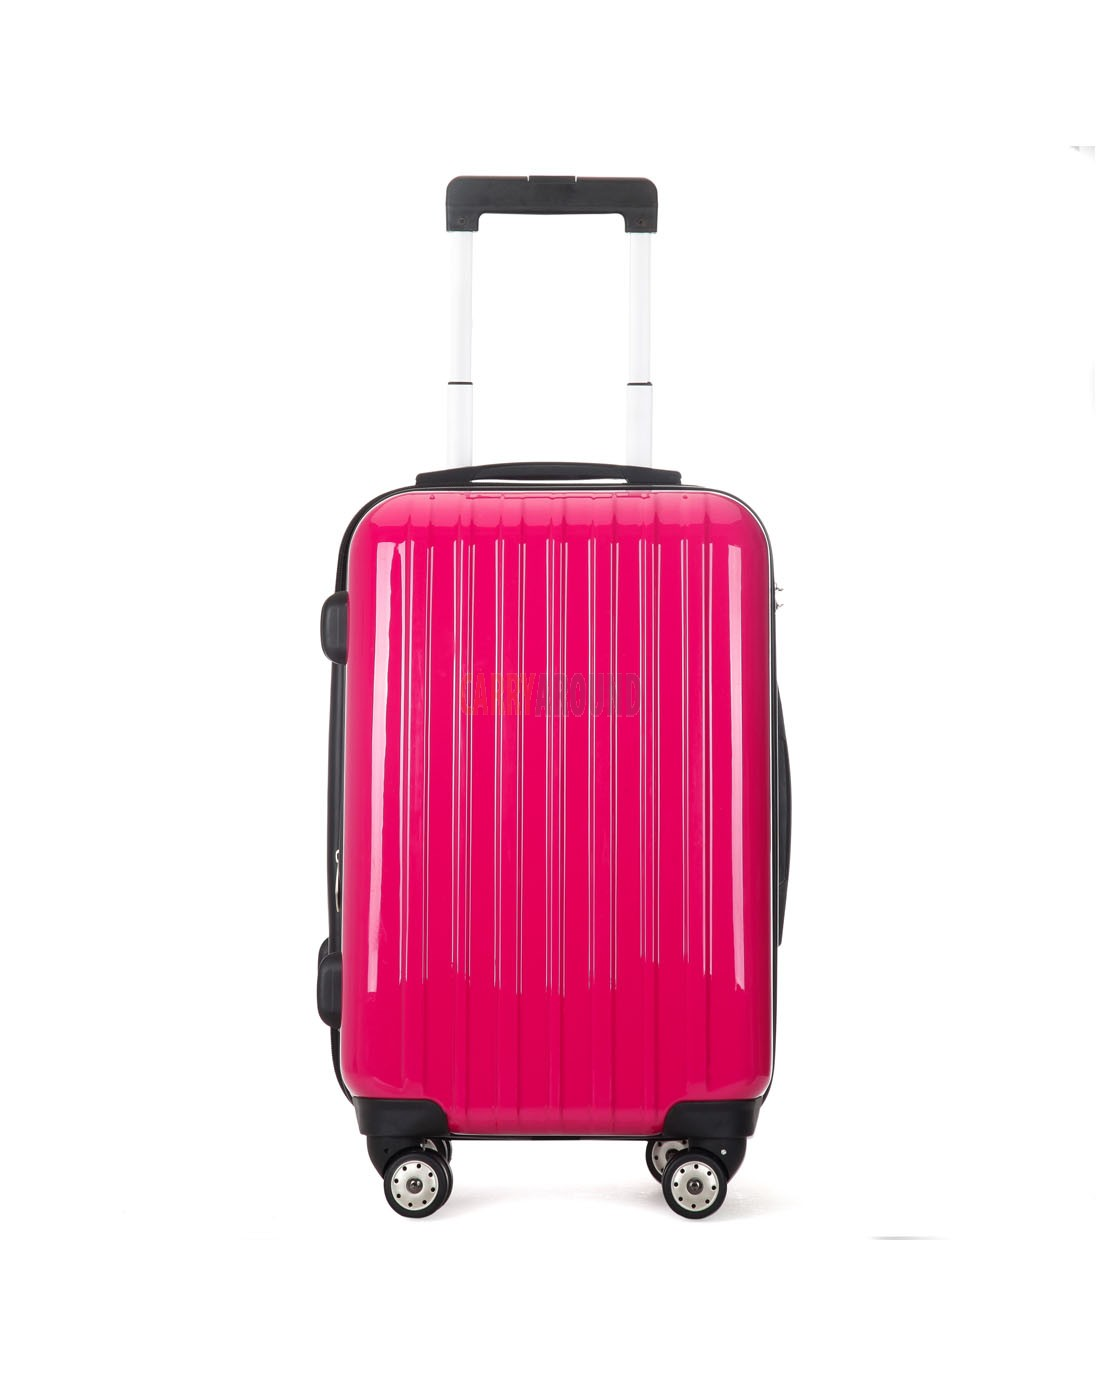 """AIRCROSS 2PC Set Luggage A55 Rose Hard Case Expandable Trolley Luggage - 20""""24"""""""